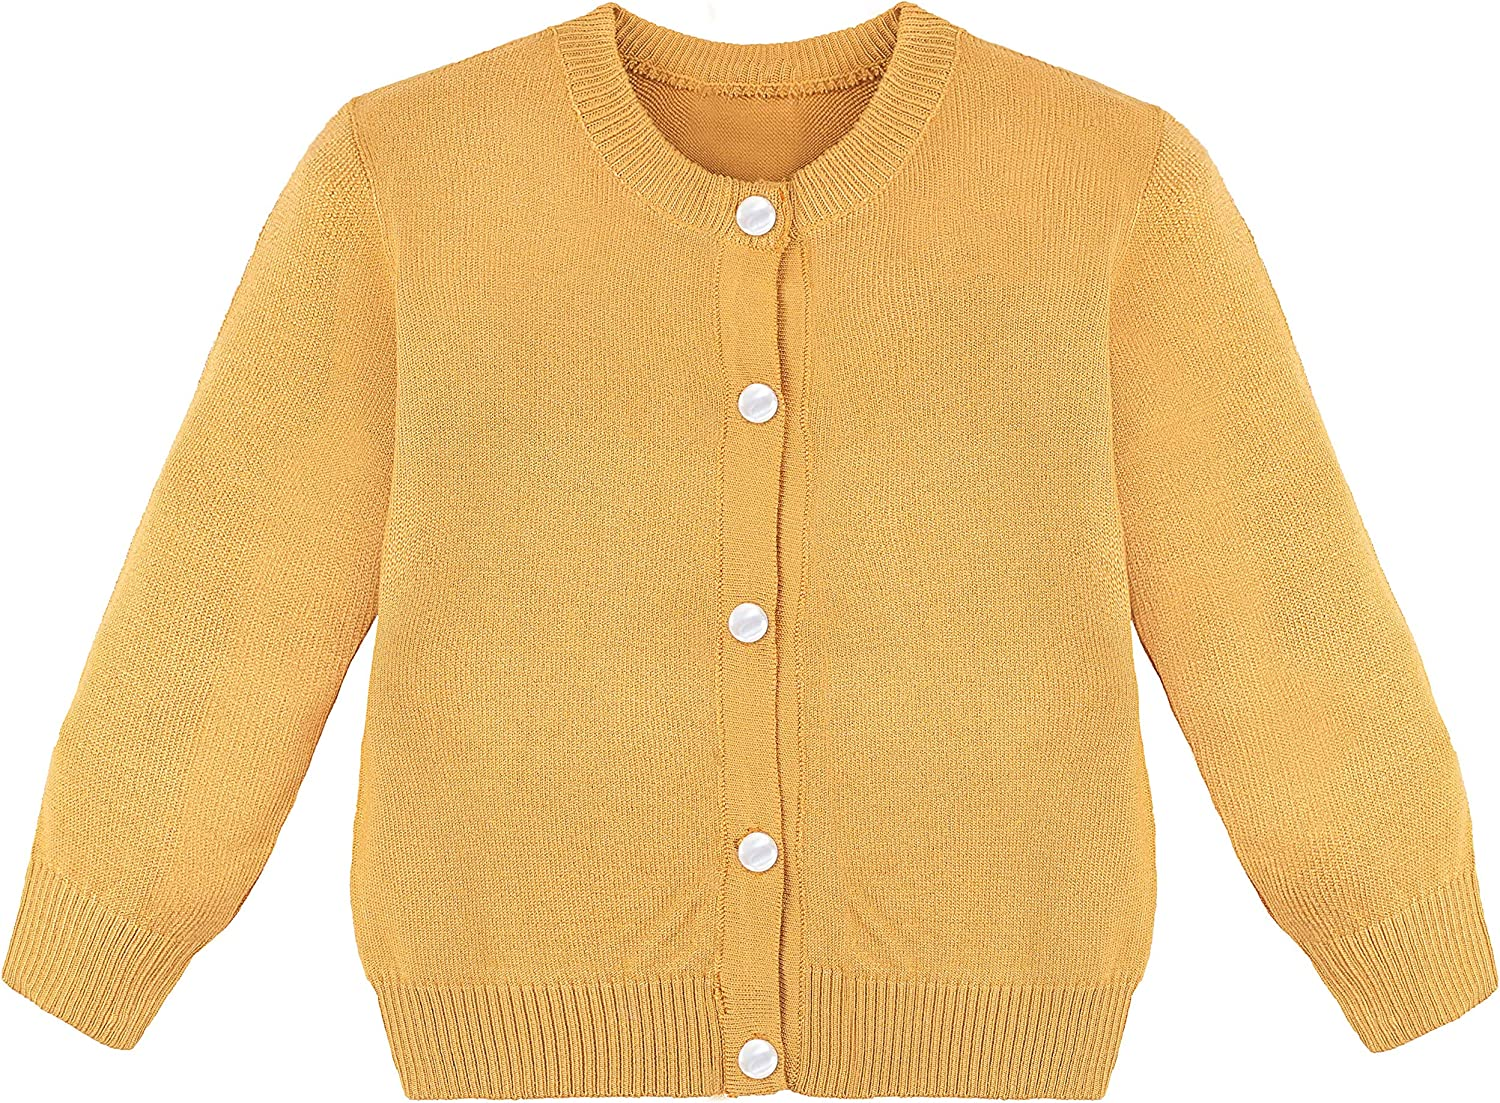 Lilax Little Girls' 70% OFF Outlet Knit Uniform Sleeve Long Cardigan Safety and trust Sweater